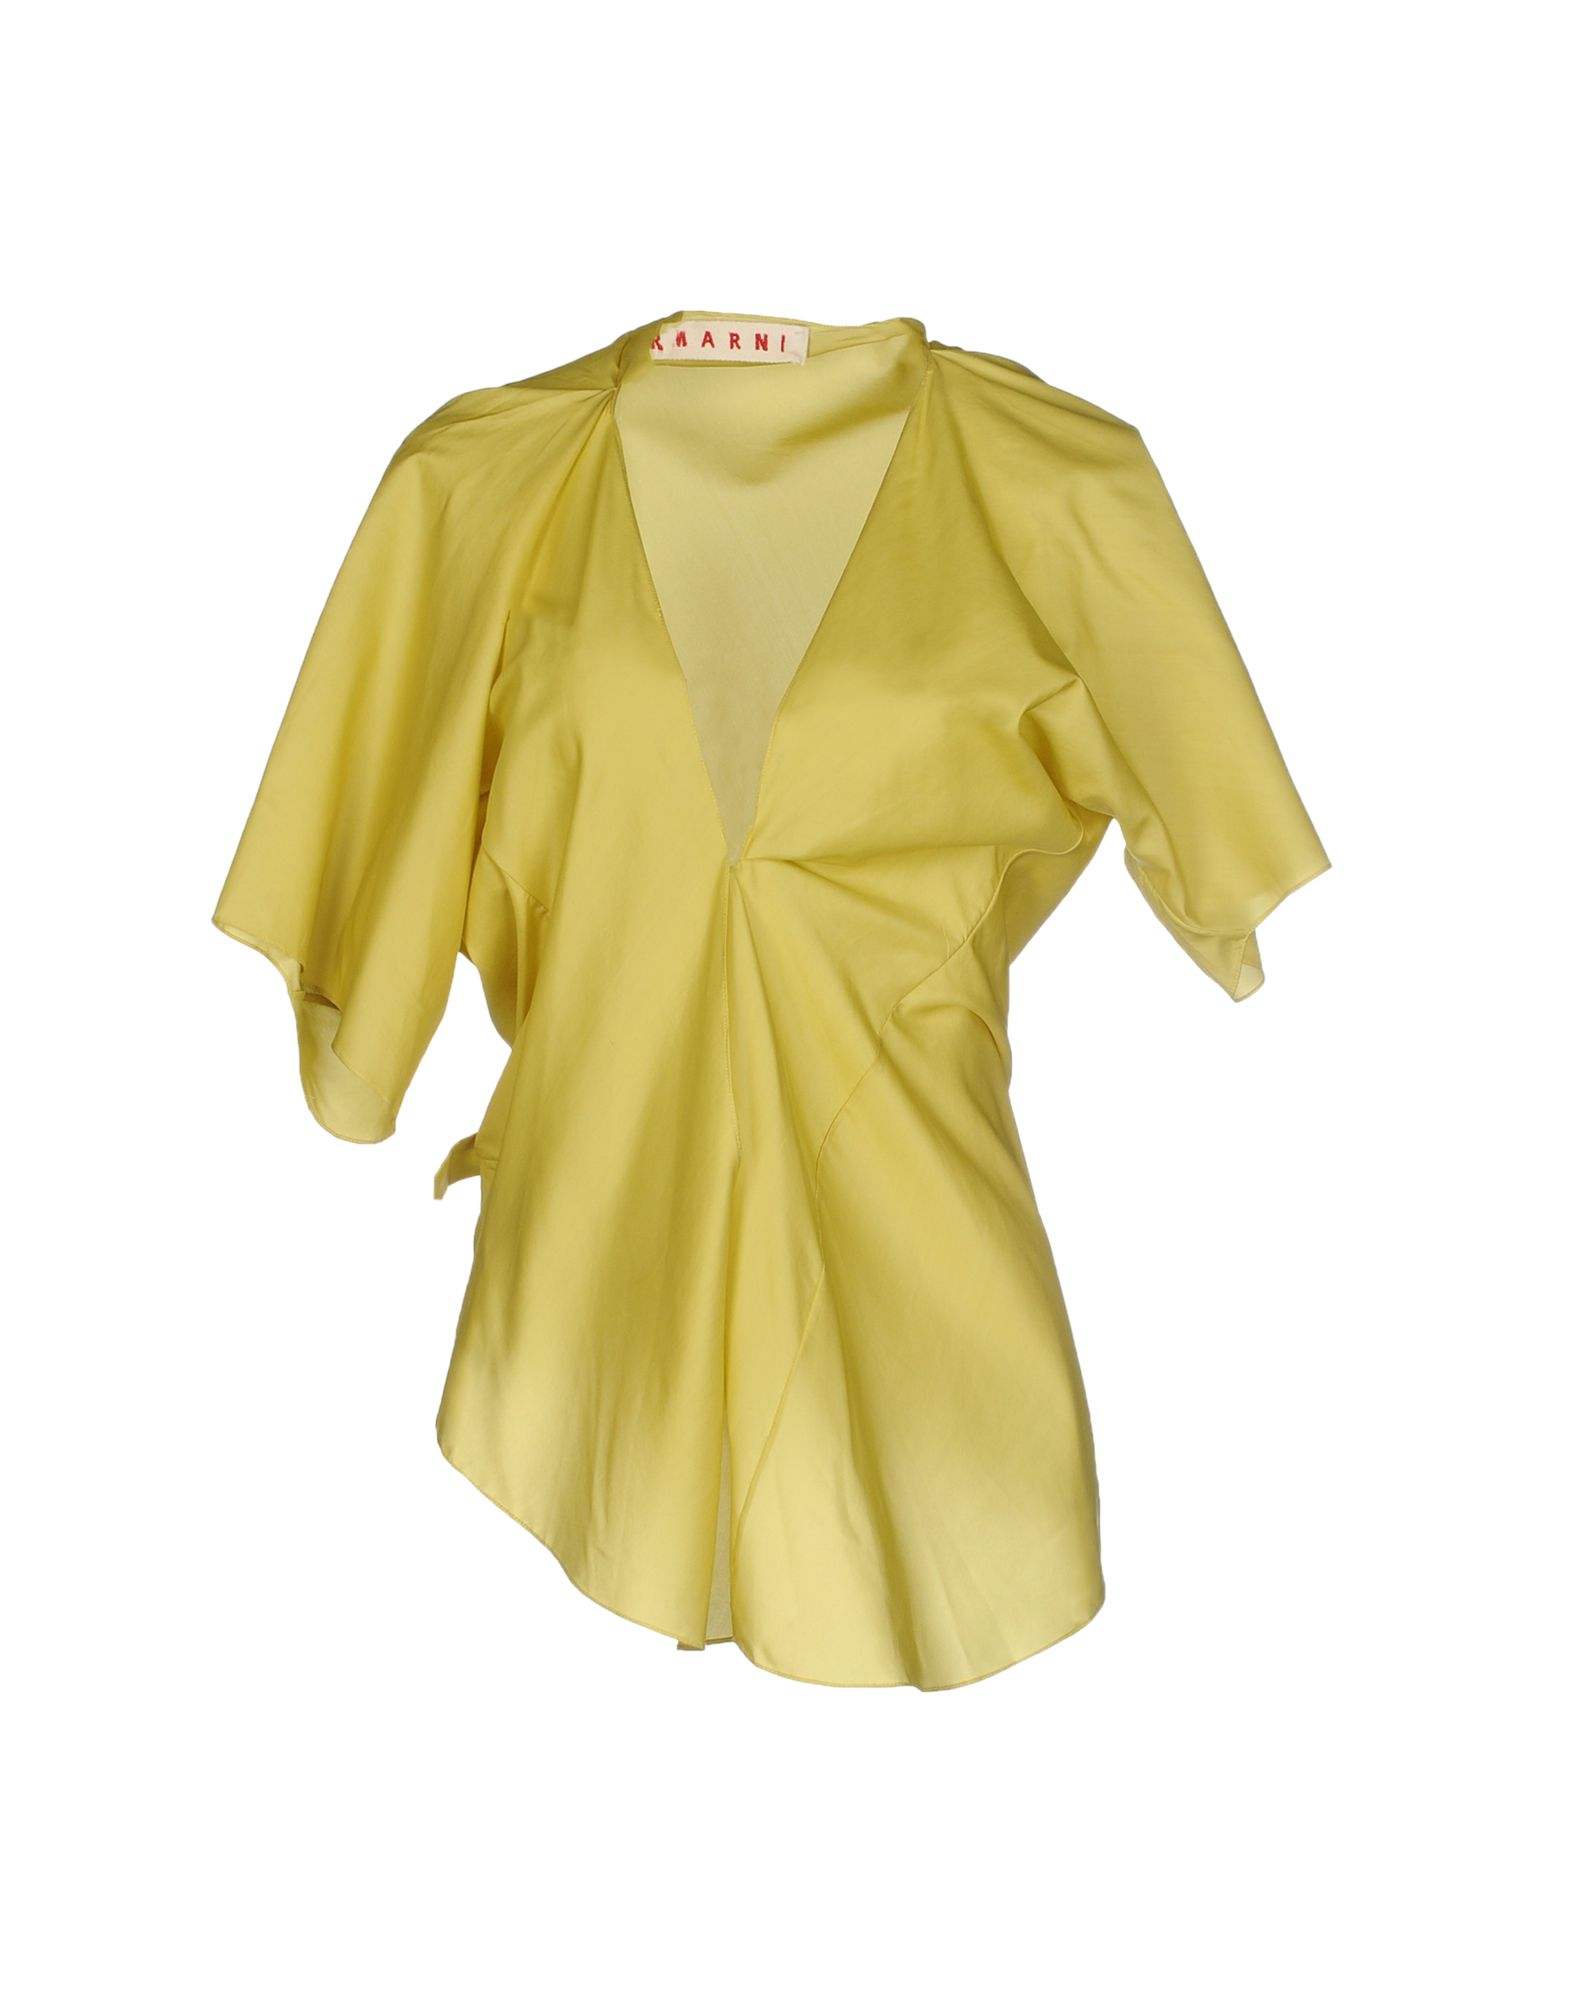 Marni yellow blouse